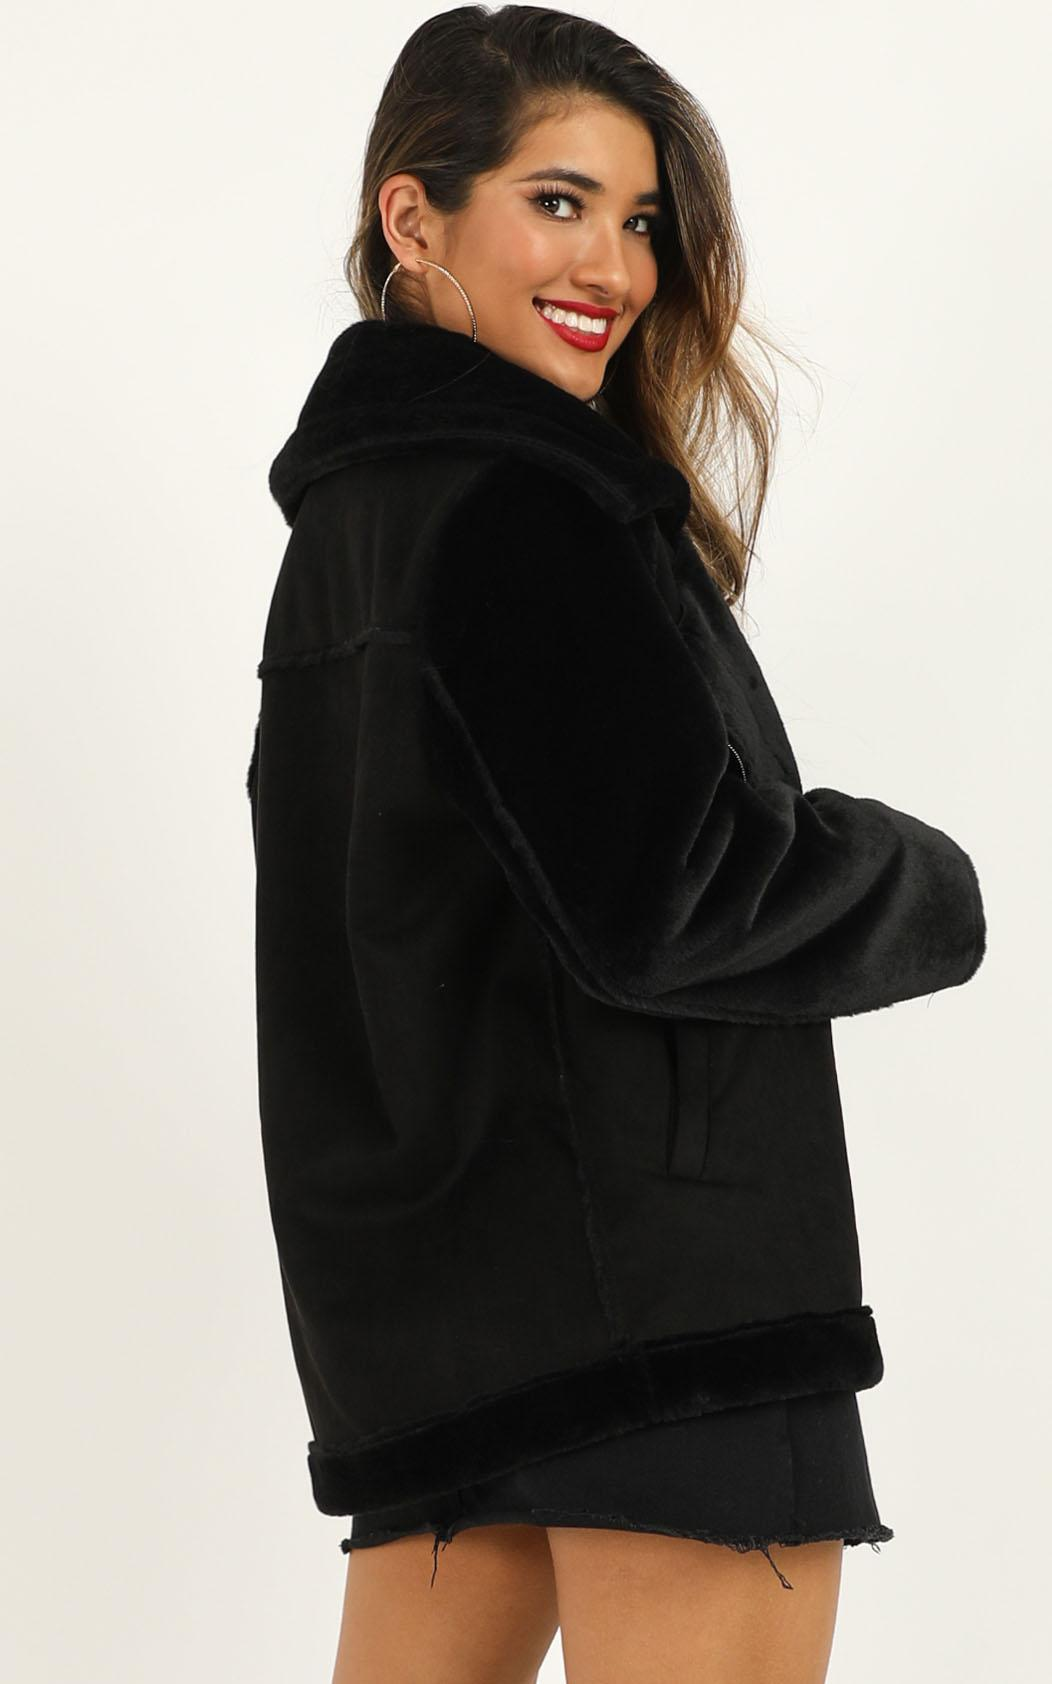 Meaningful Moment Jacket in black - 18 (XXXL), Black, hi-res image number null